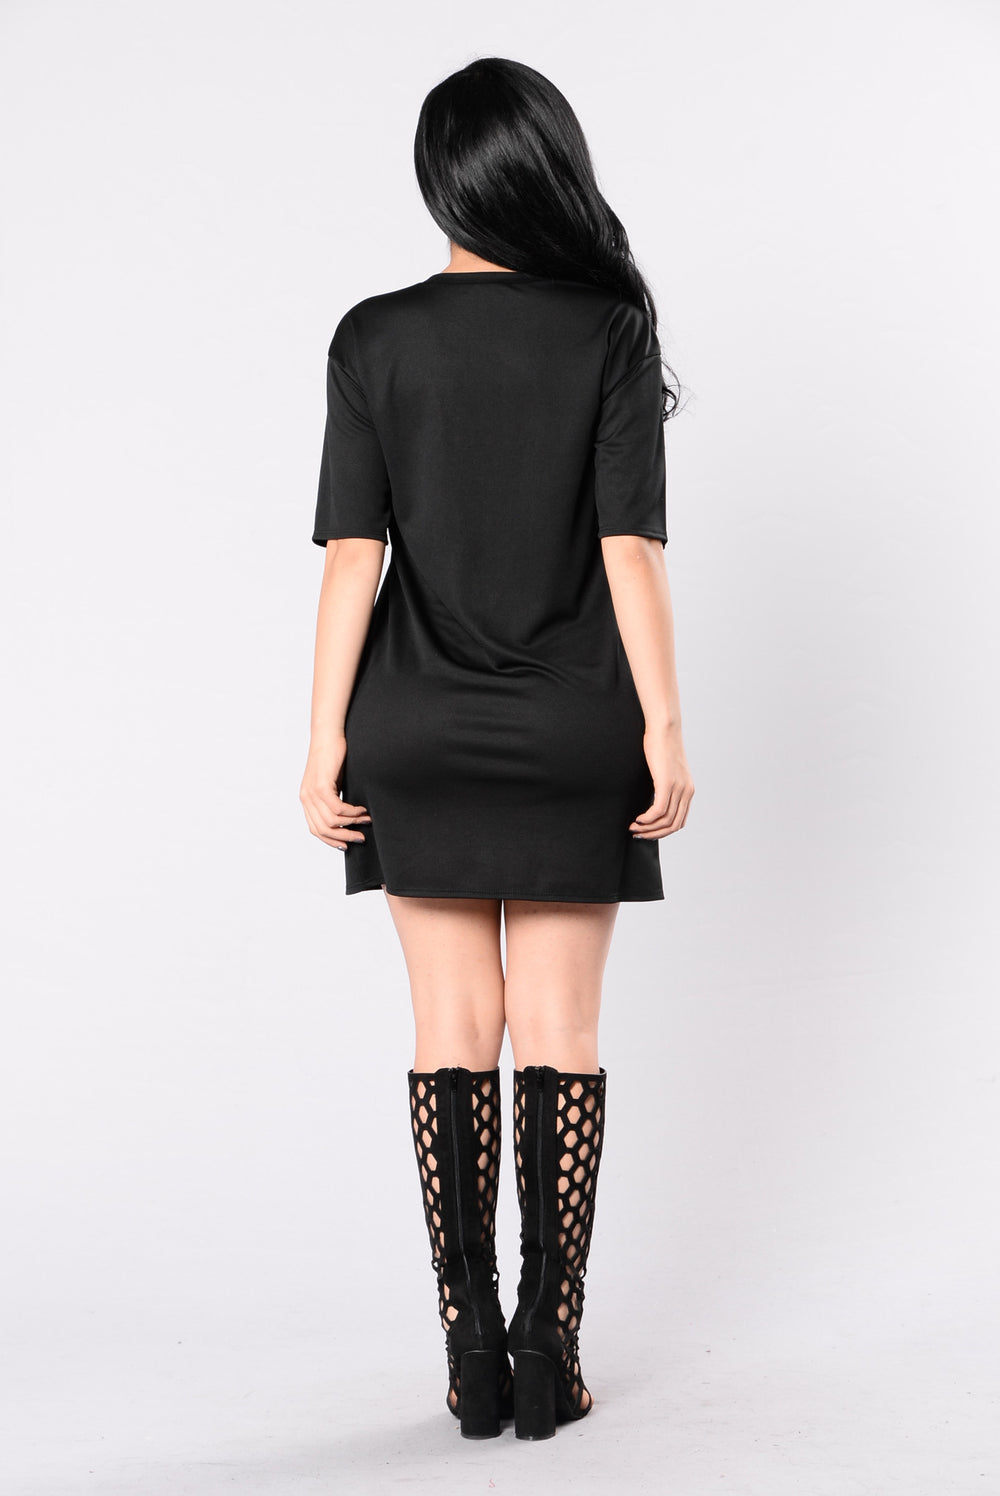 Slay All Day Tunic - Black